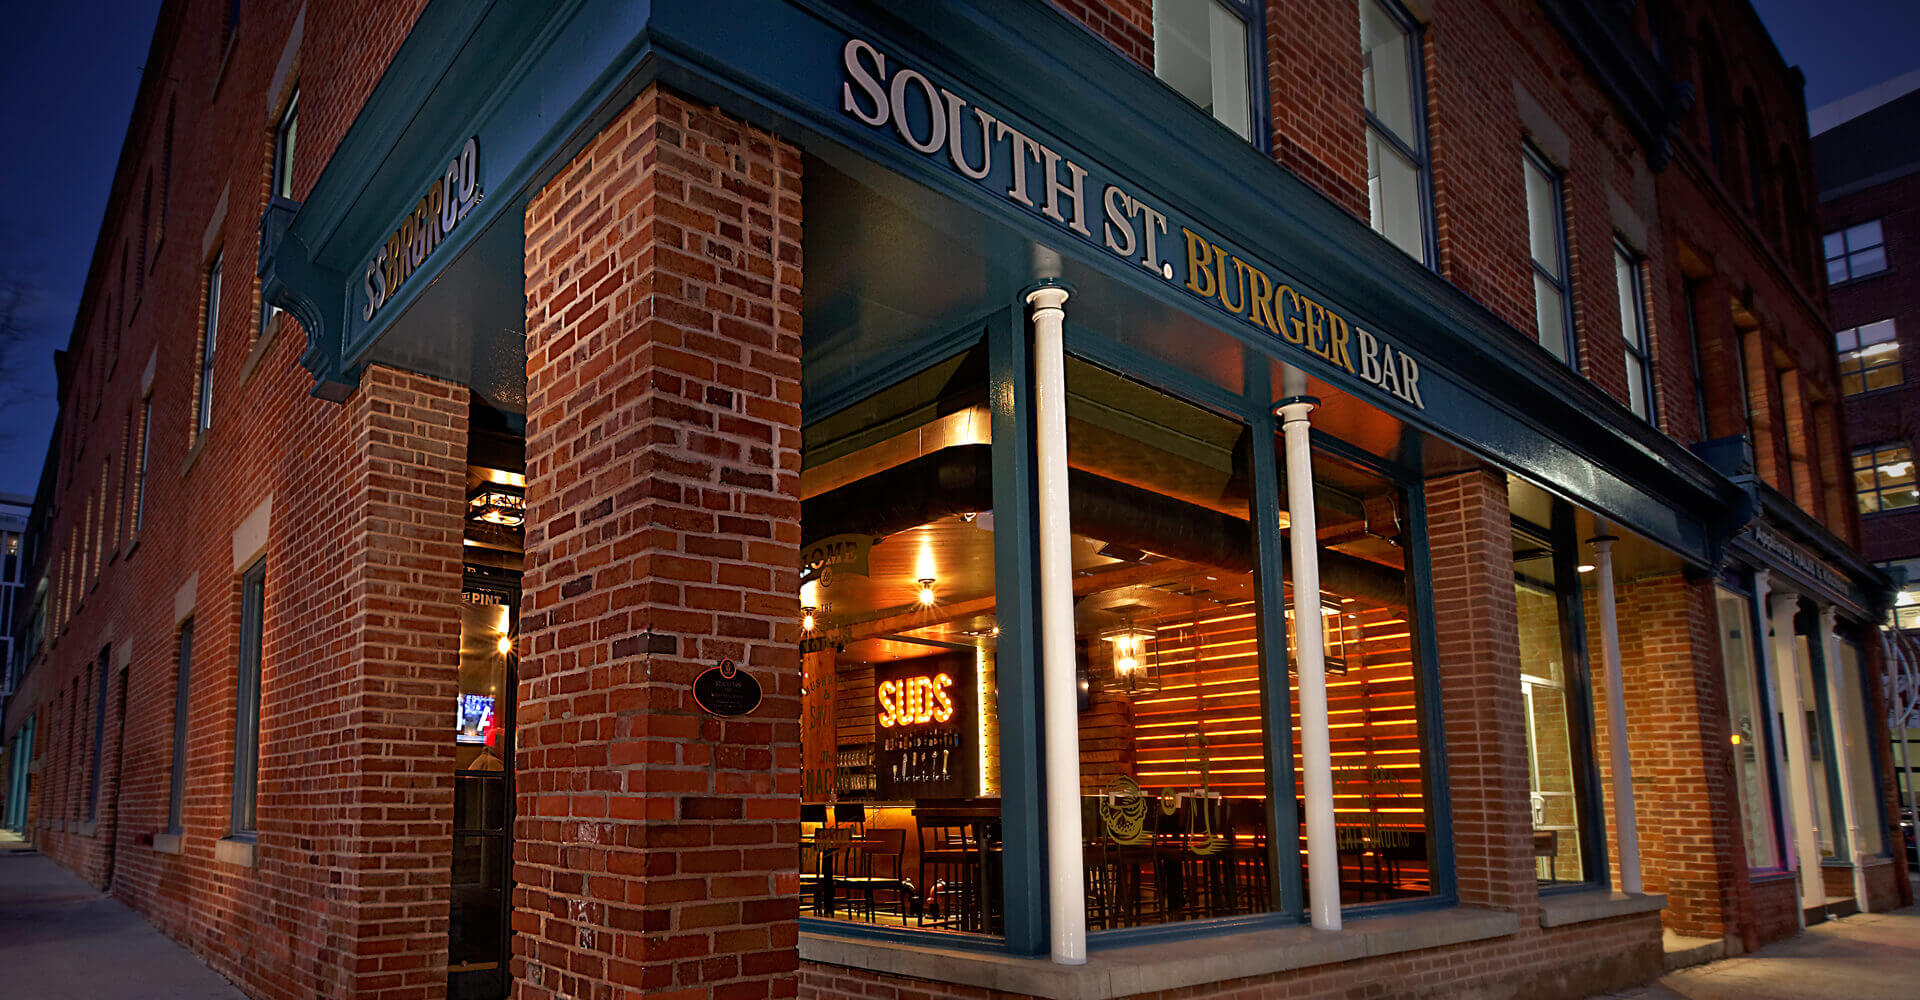 South St. Burger Bar